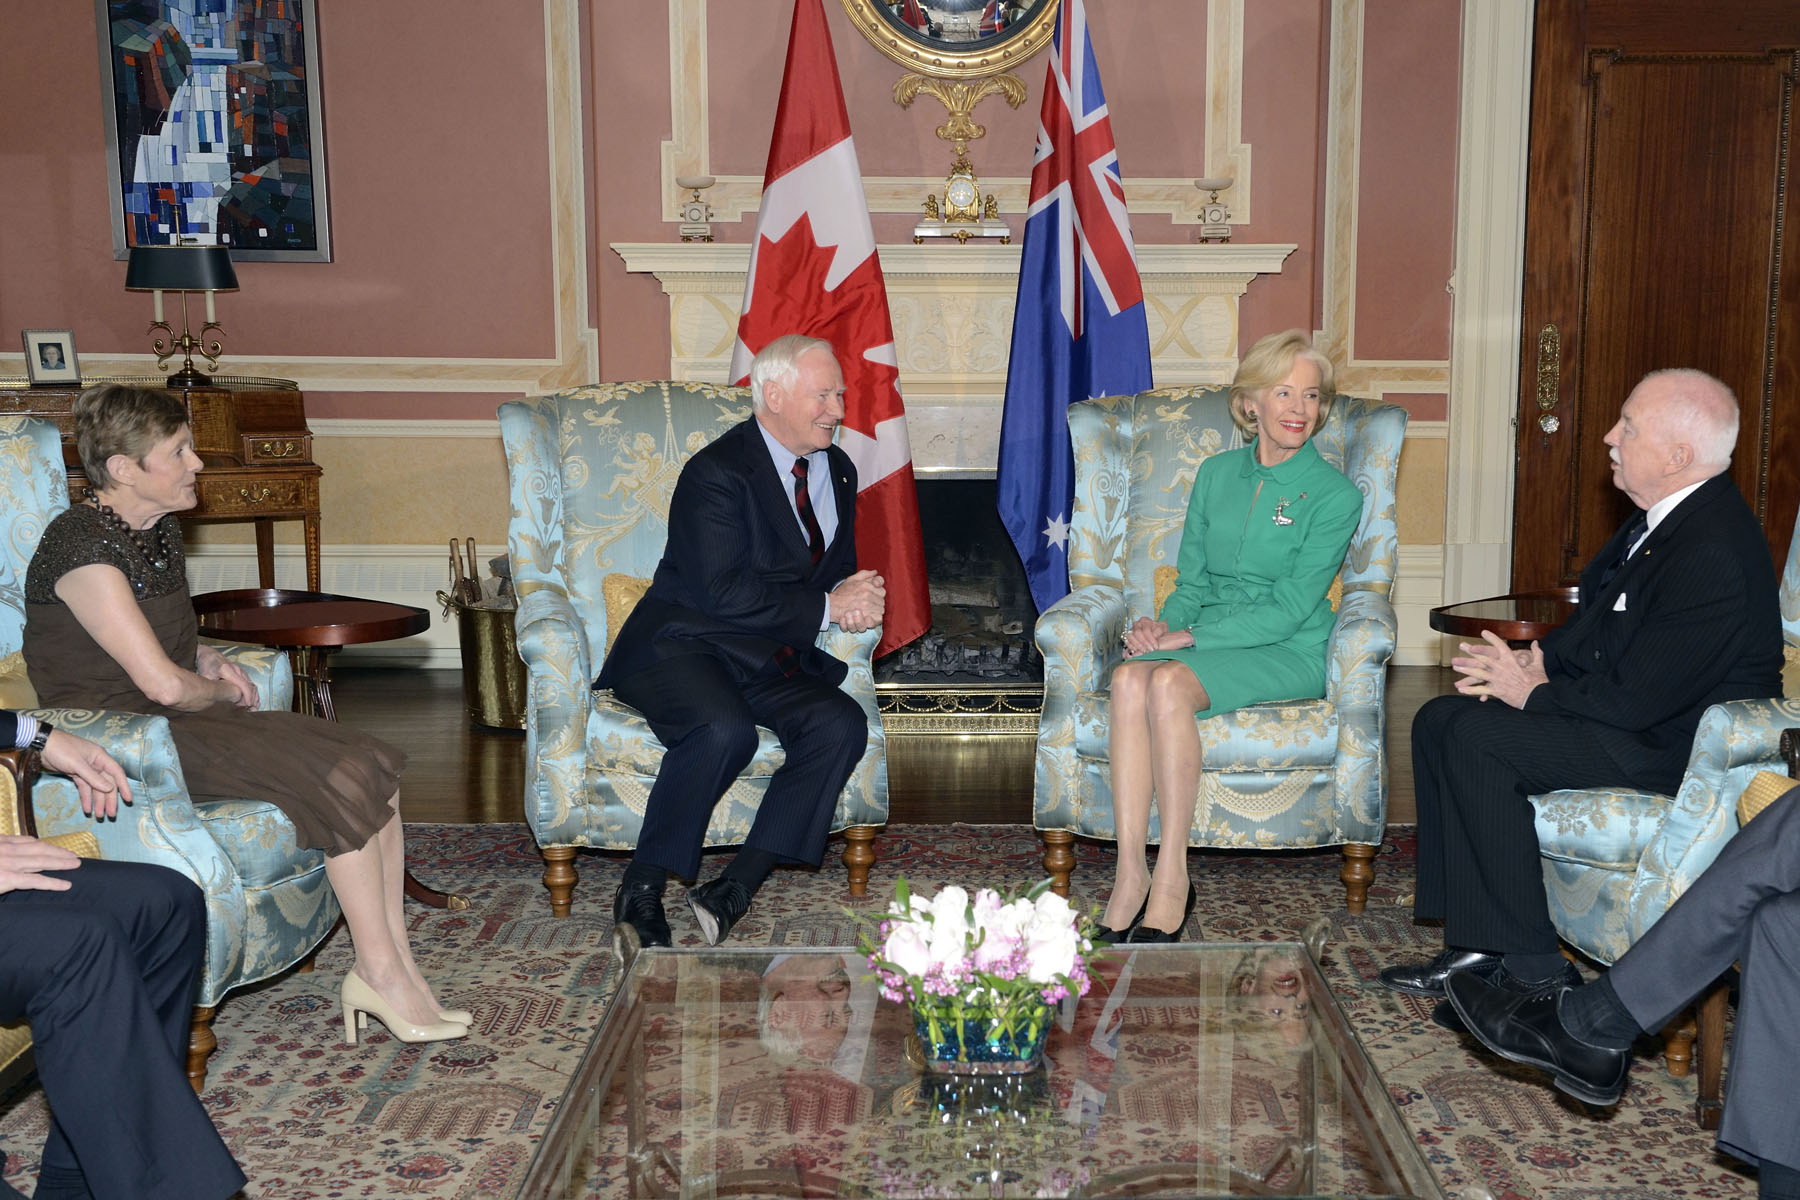 On this occasion, both governors general met to discuss linkages between both nations and their role as representatives of Her Majesty The Queen.